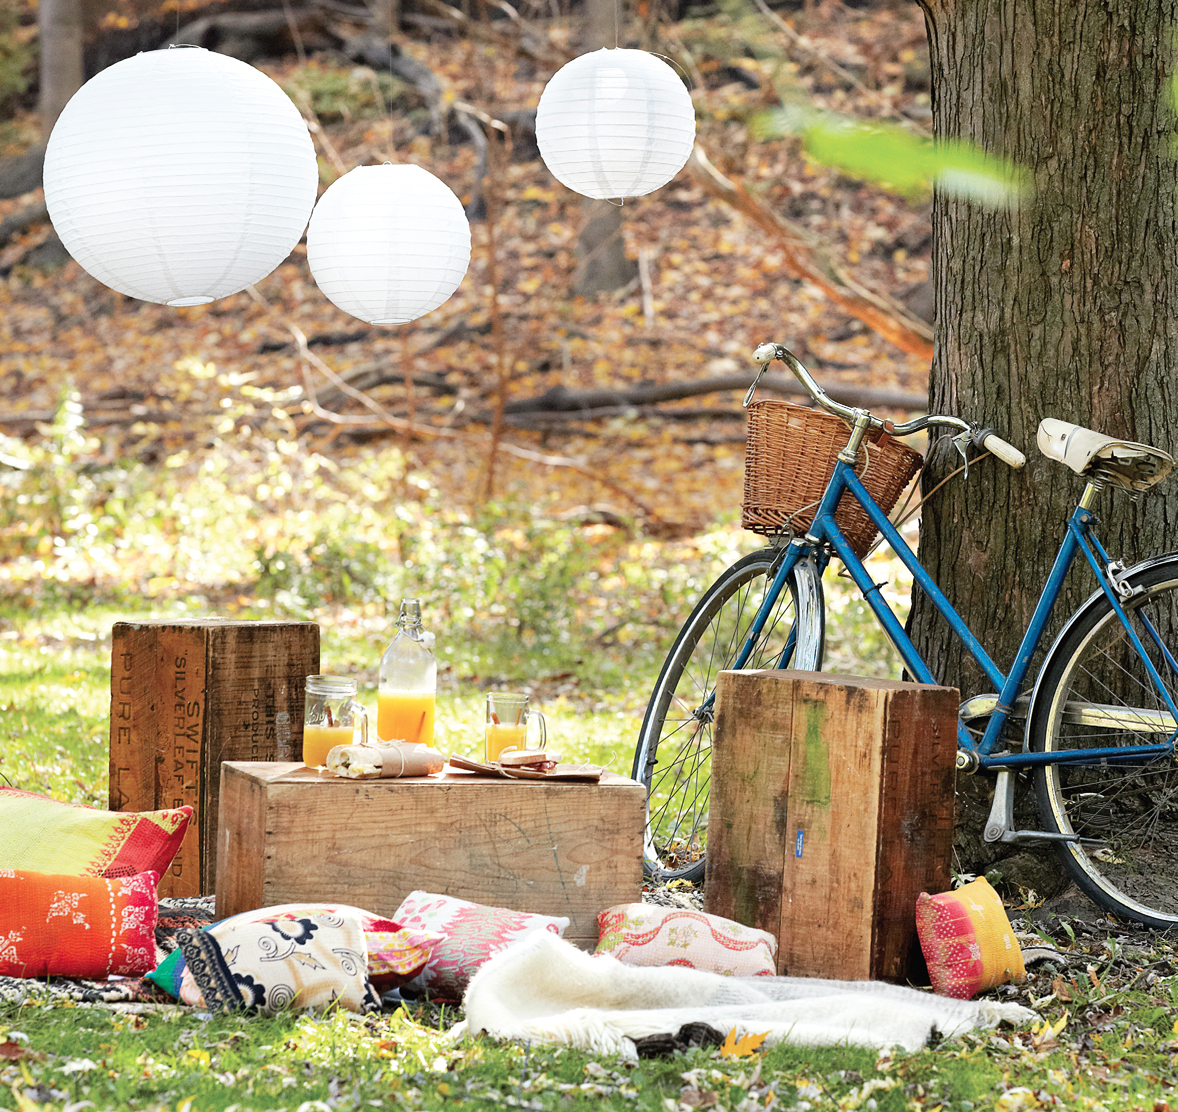 Backyard picnic with bike, crates, blankets, cider, glass jars